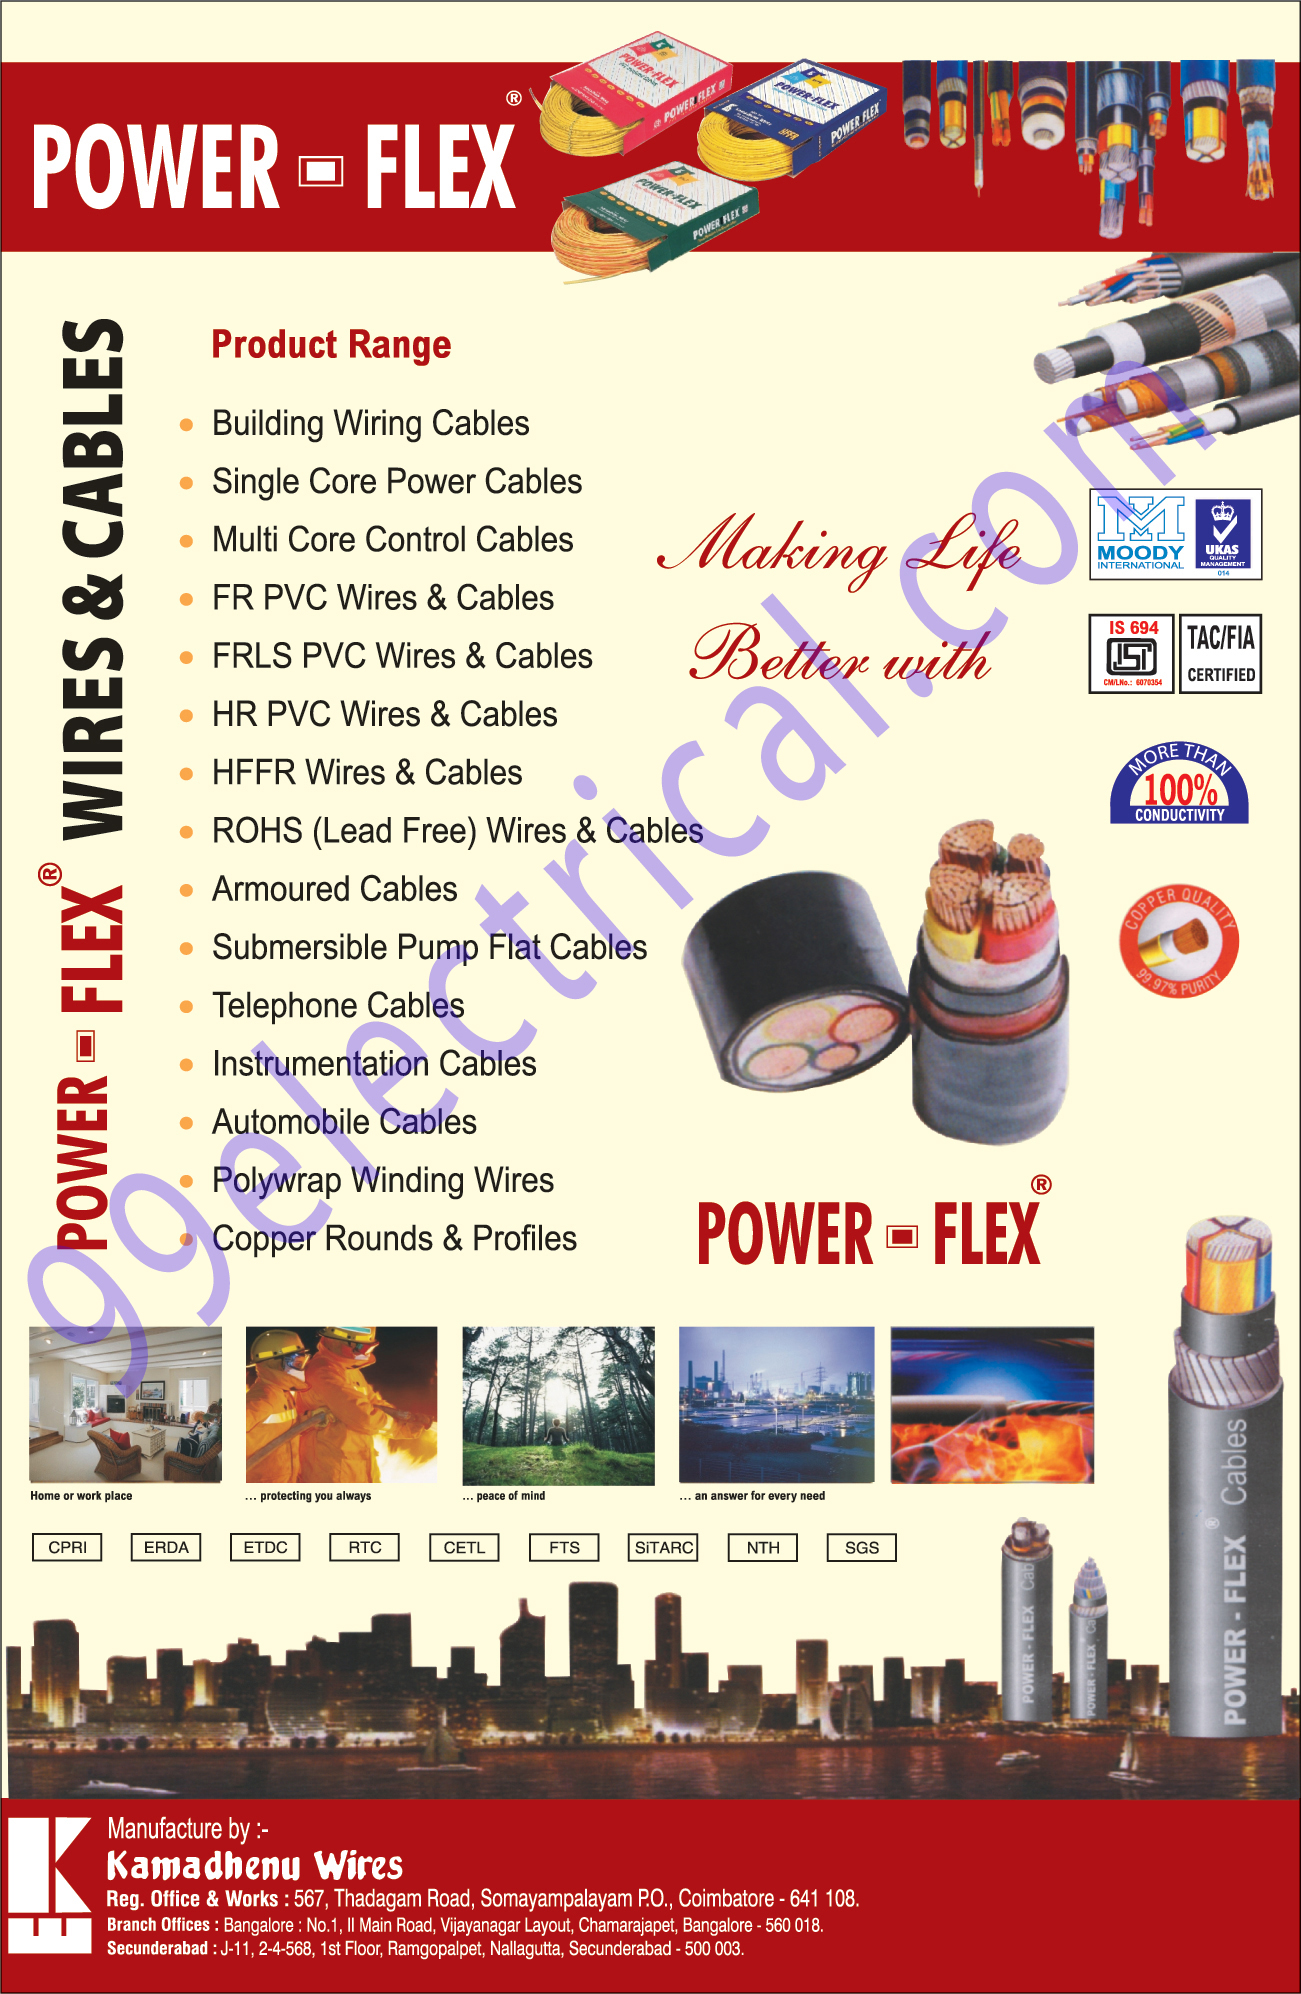 Building Wiring Cables, Single Core Power Cables, Core Control Cables, FR PVC Wires, FR PVC Cables, FRLS PVC Wires, FRLS PVC Cables, HR PVC Wires, HR PVC Cables, HRFR Wires, HRFR Cables, ROHS Wires, ROHS Cables, Armoured Cables, Submersible Pump Flat Cables, Telephone Cables, Instrument Cables, Automotive Cables, Poly Wrap Winding Cables, Copper Rounds, Copper Profiles,Polywrap Winding Wires, Copper Rounds, Copper Profiles